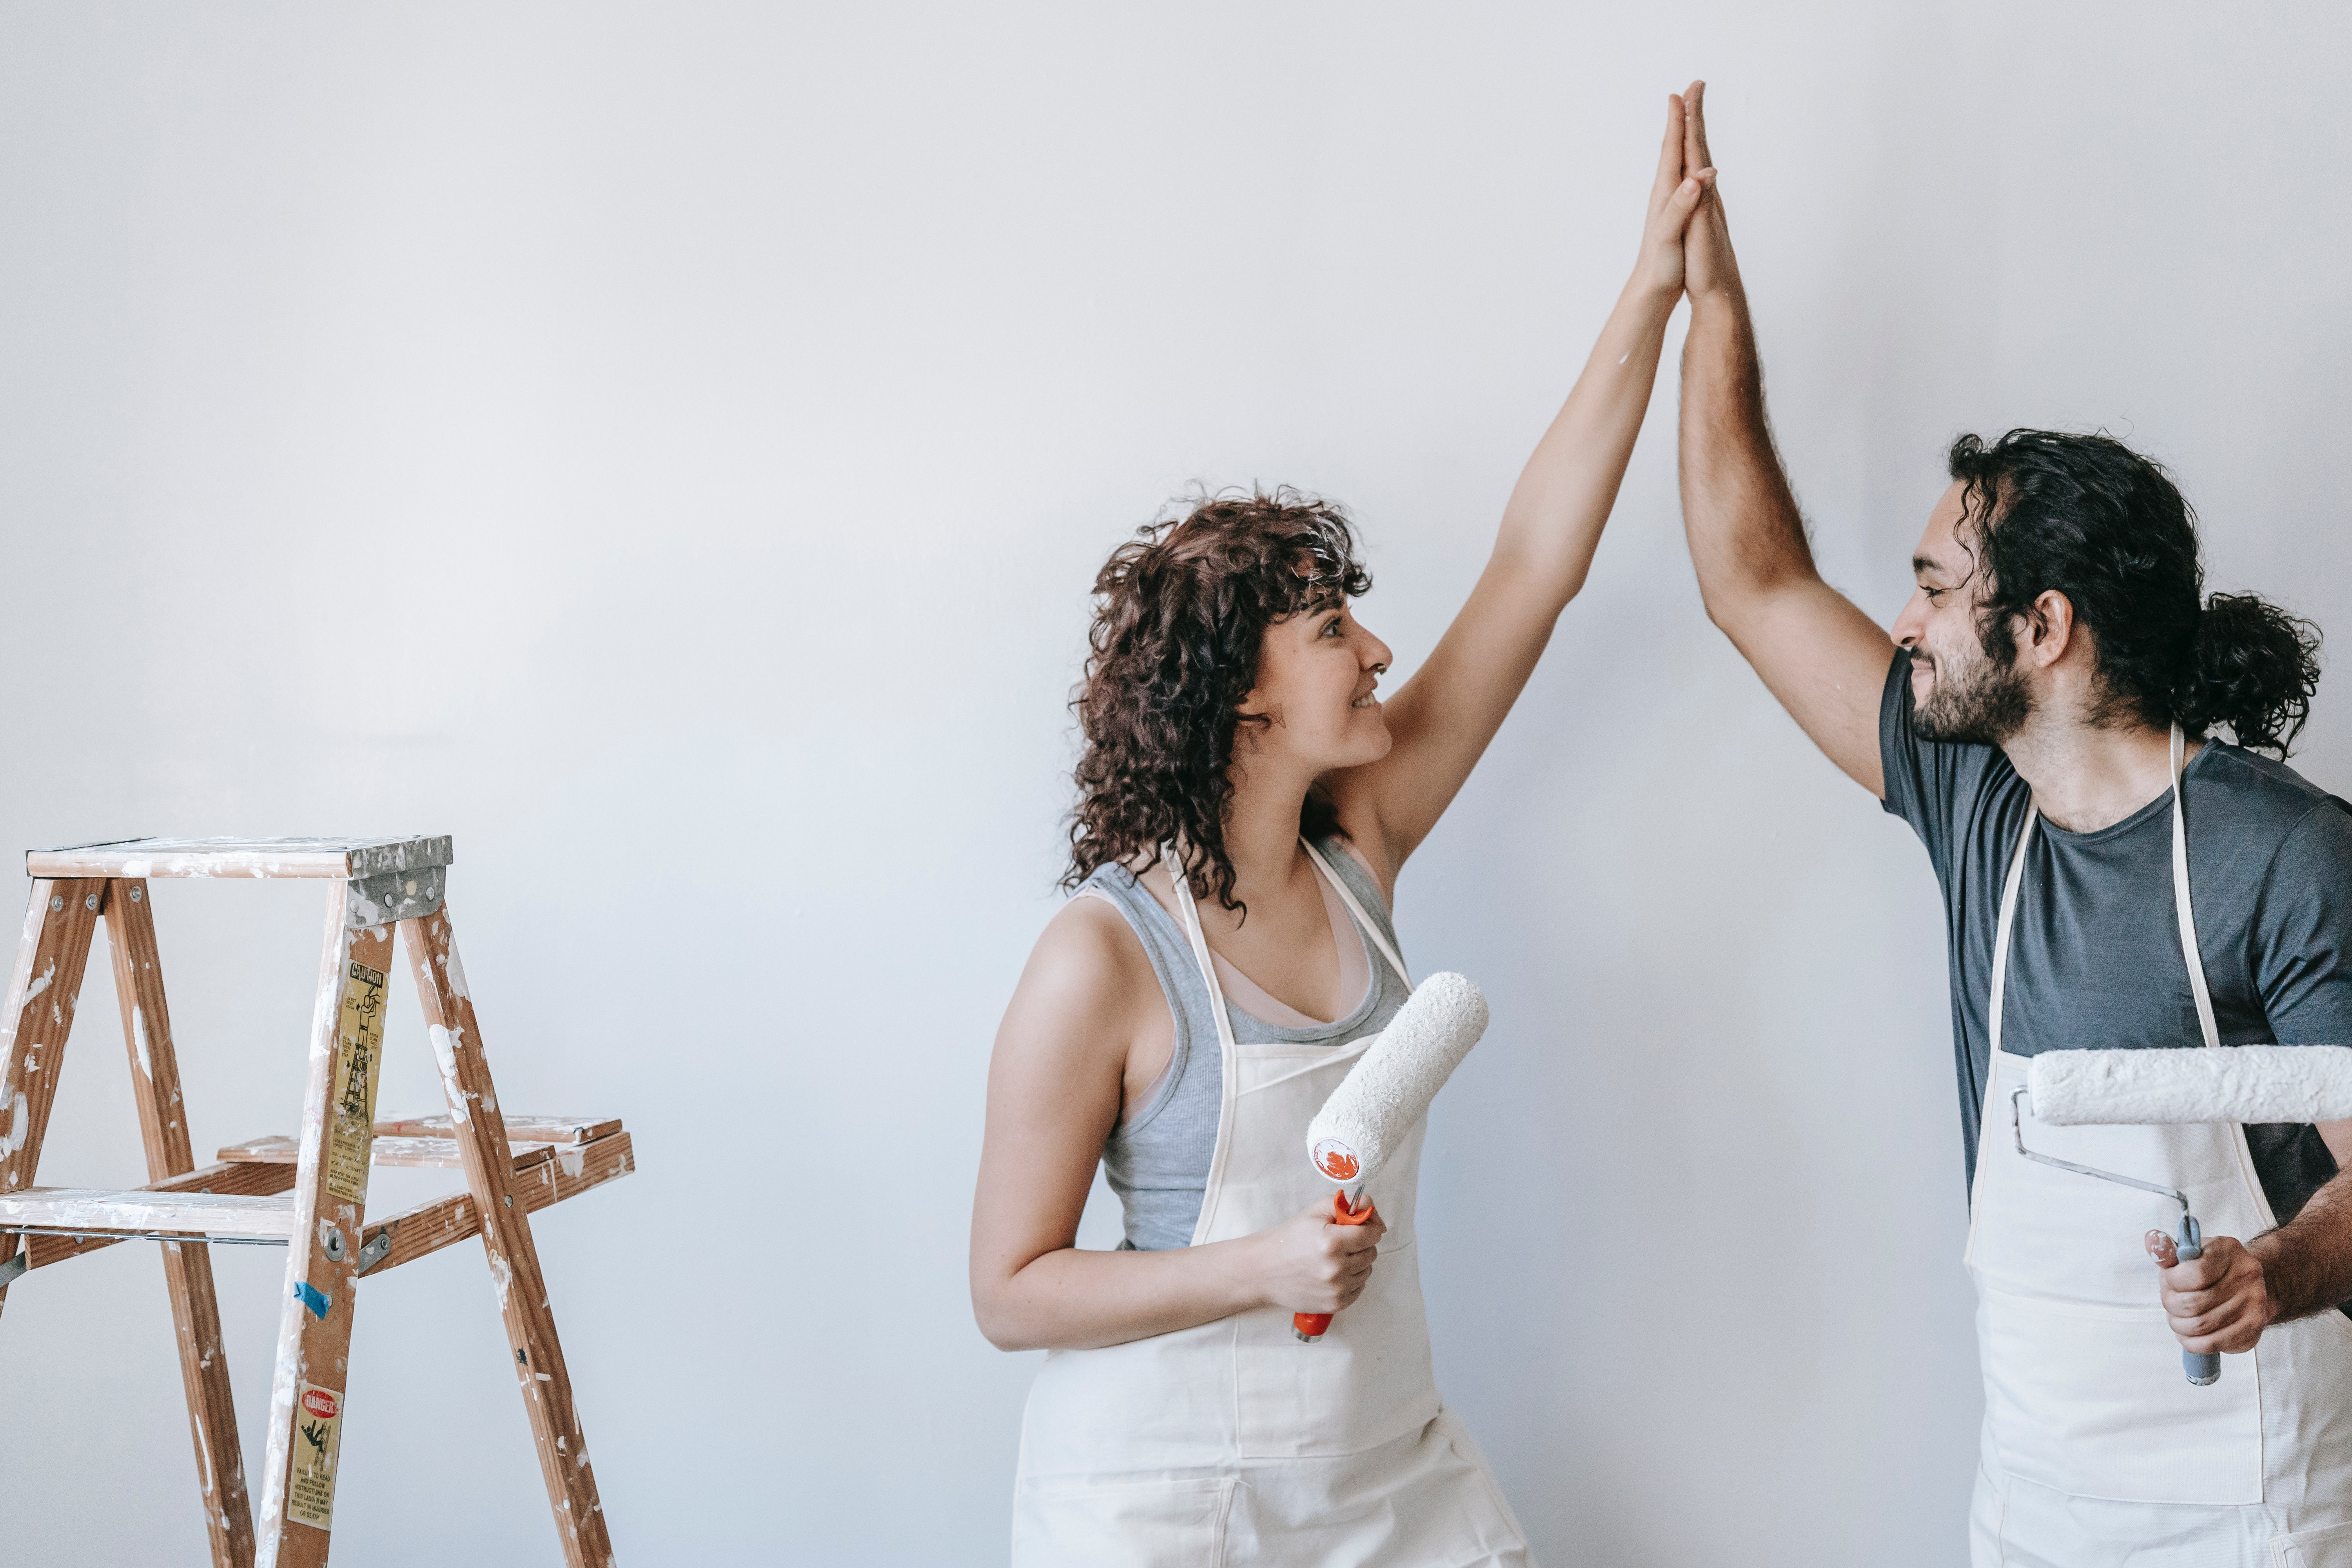 Two people high five after repainting a wall